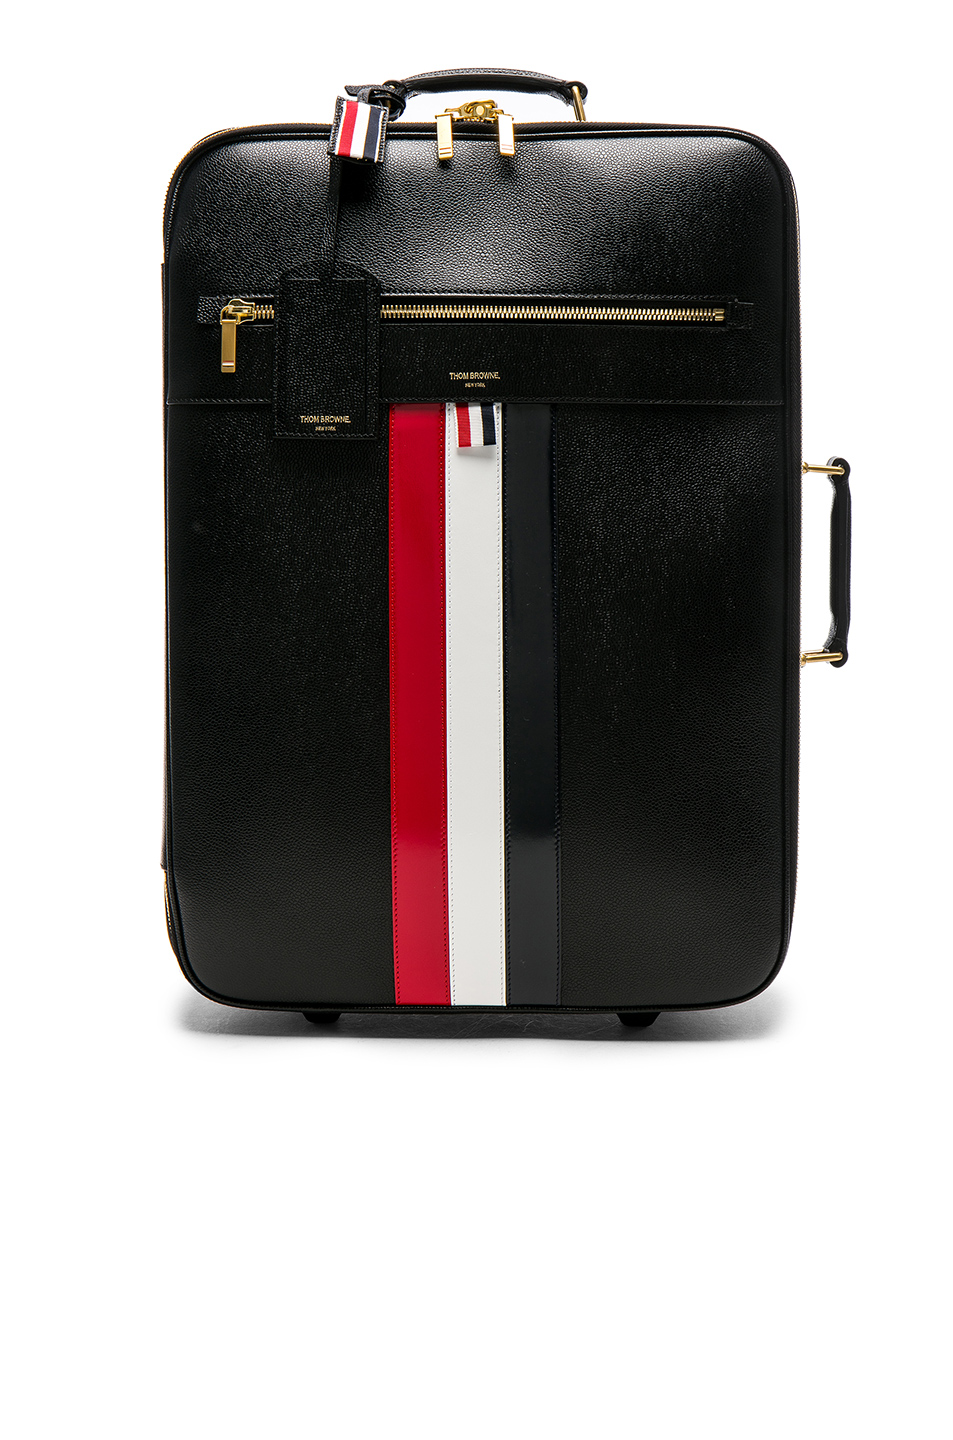 Thom Browne Pebble Grain & Calf Leather Wheeled Travel Bag in Black